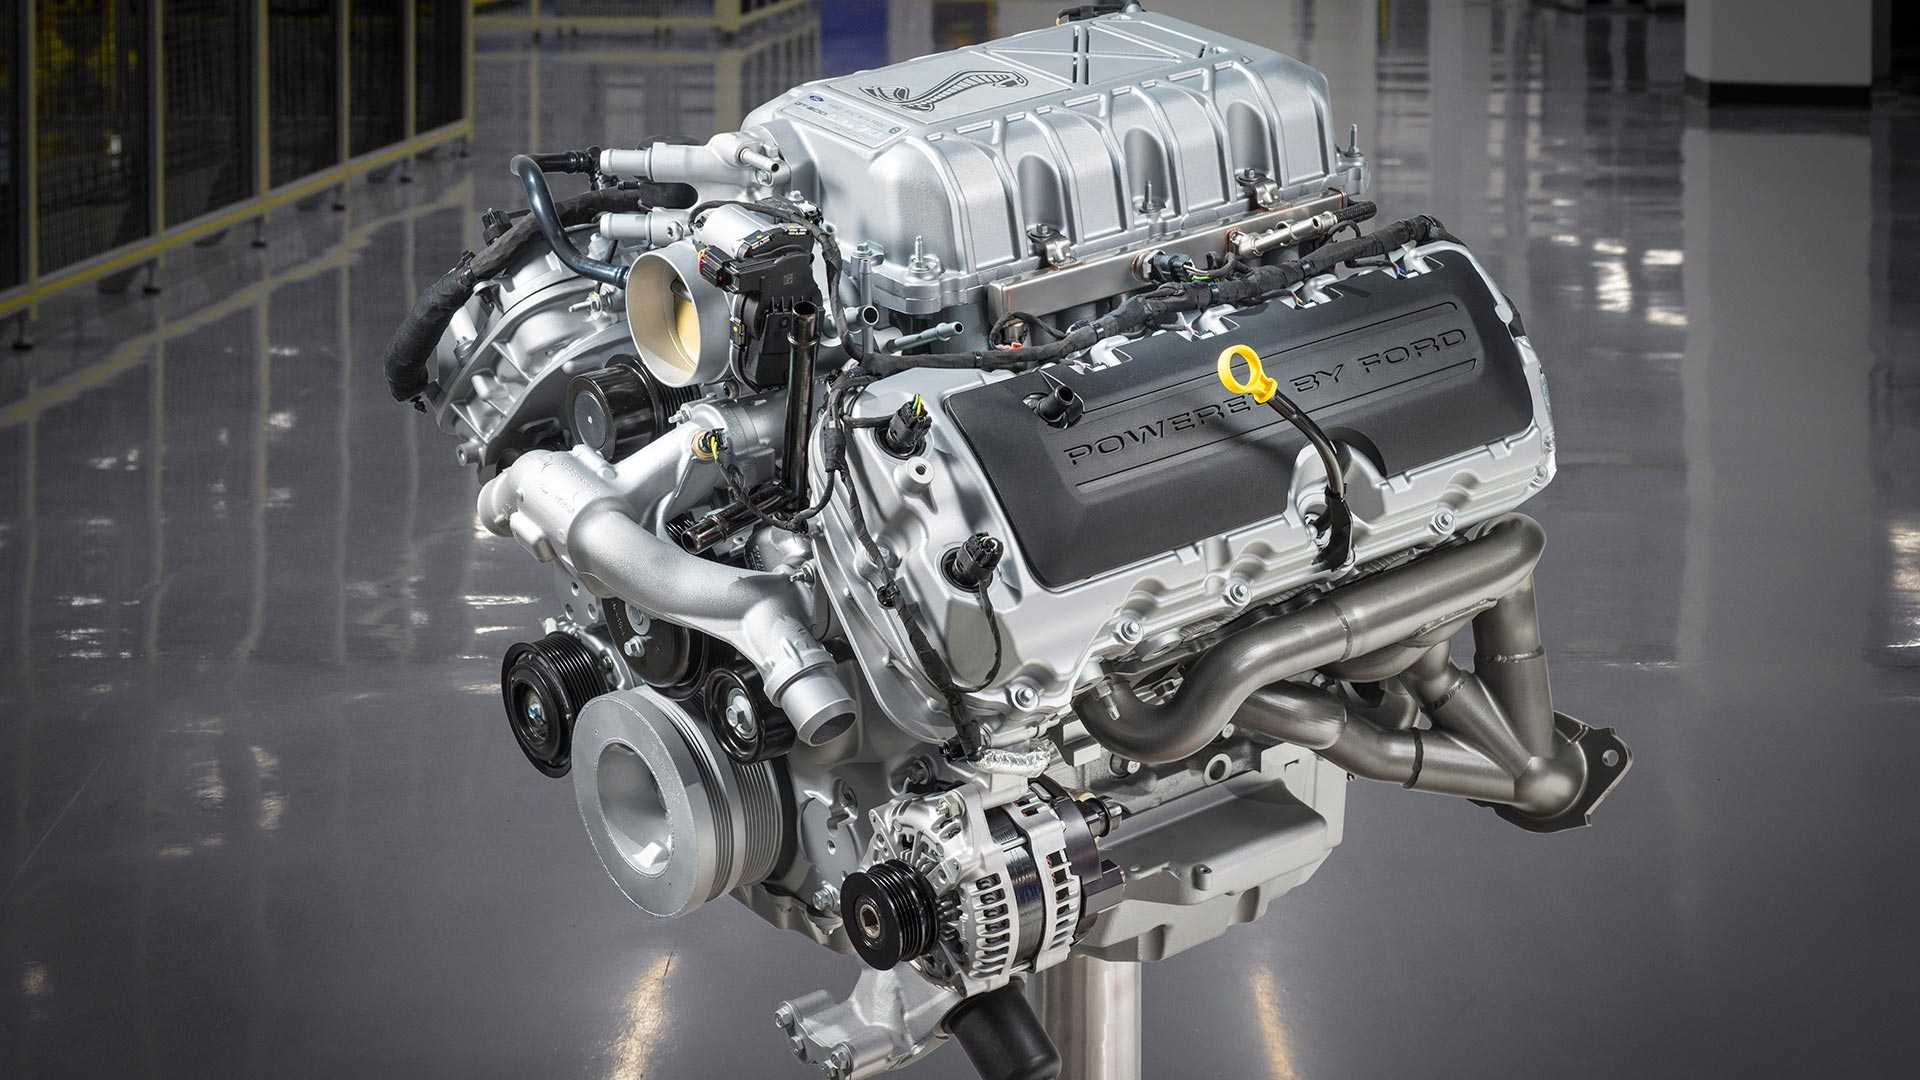 Watch The 2020 Shelby GT500's 760-HP V8 Being Built By Hand